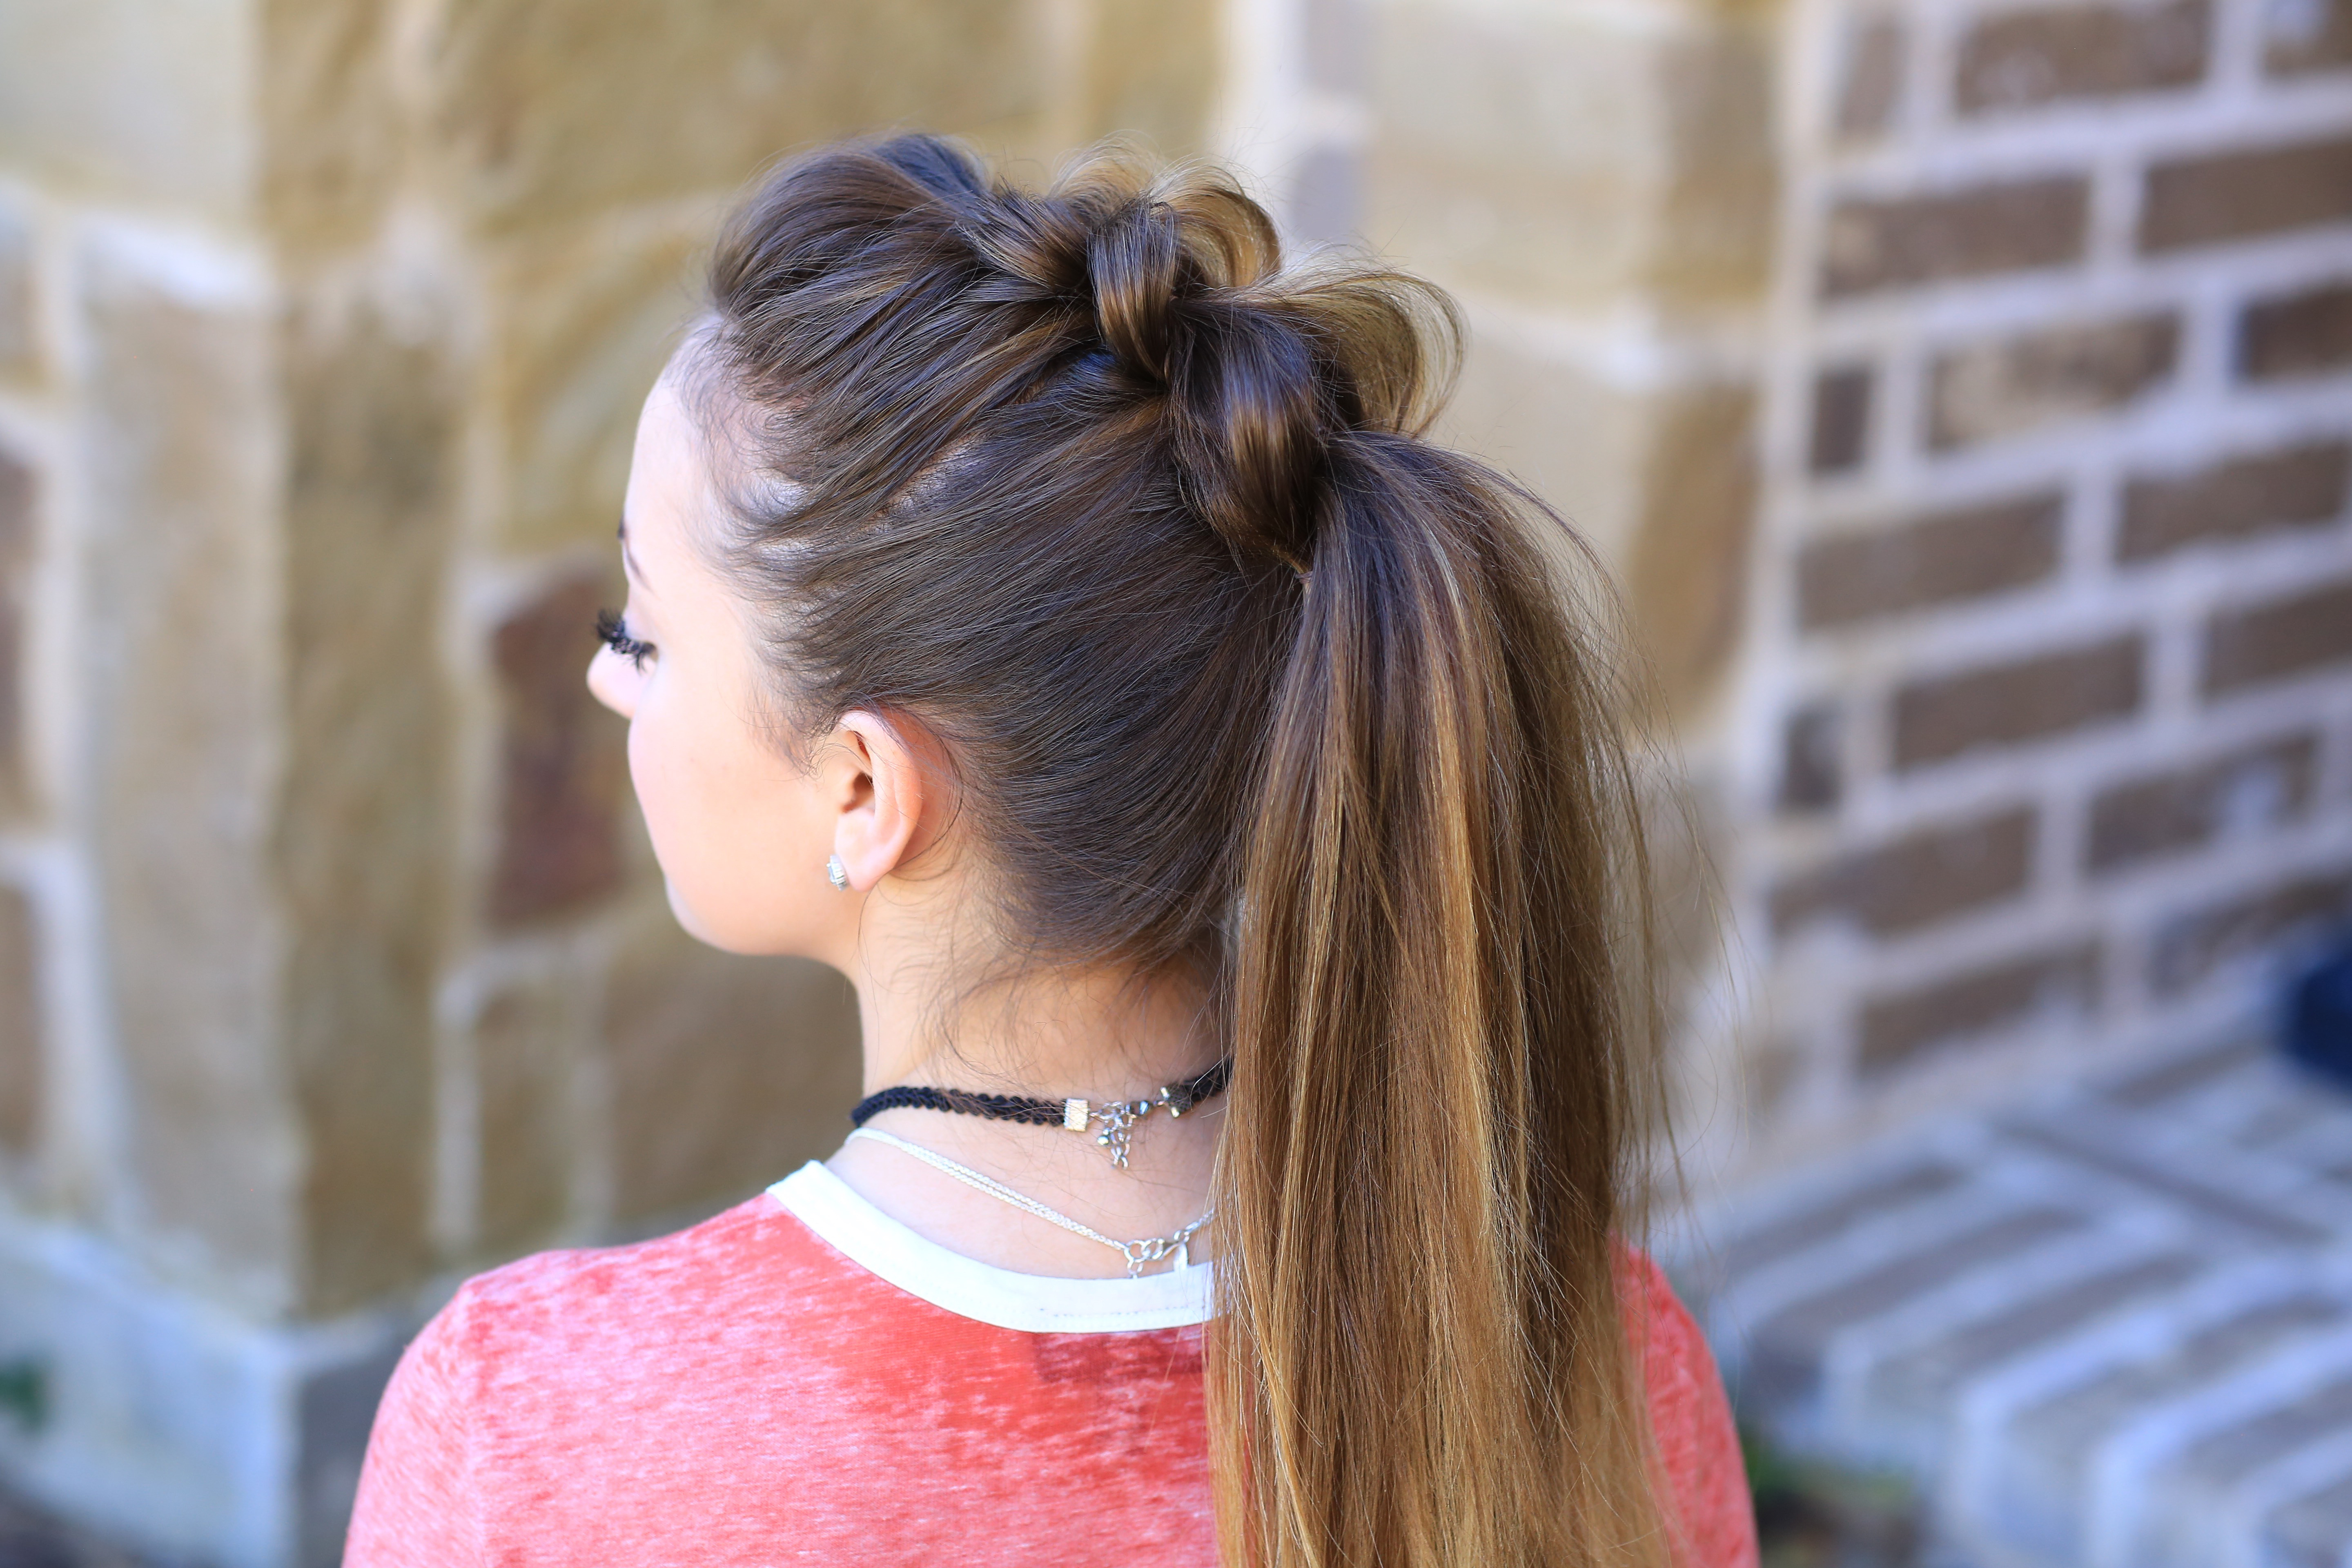 Best ideas about Girl Hairstyle . Save or Pin Pull Thru Ponytail Now.